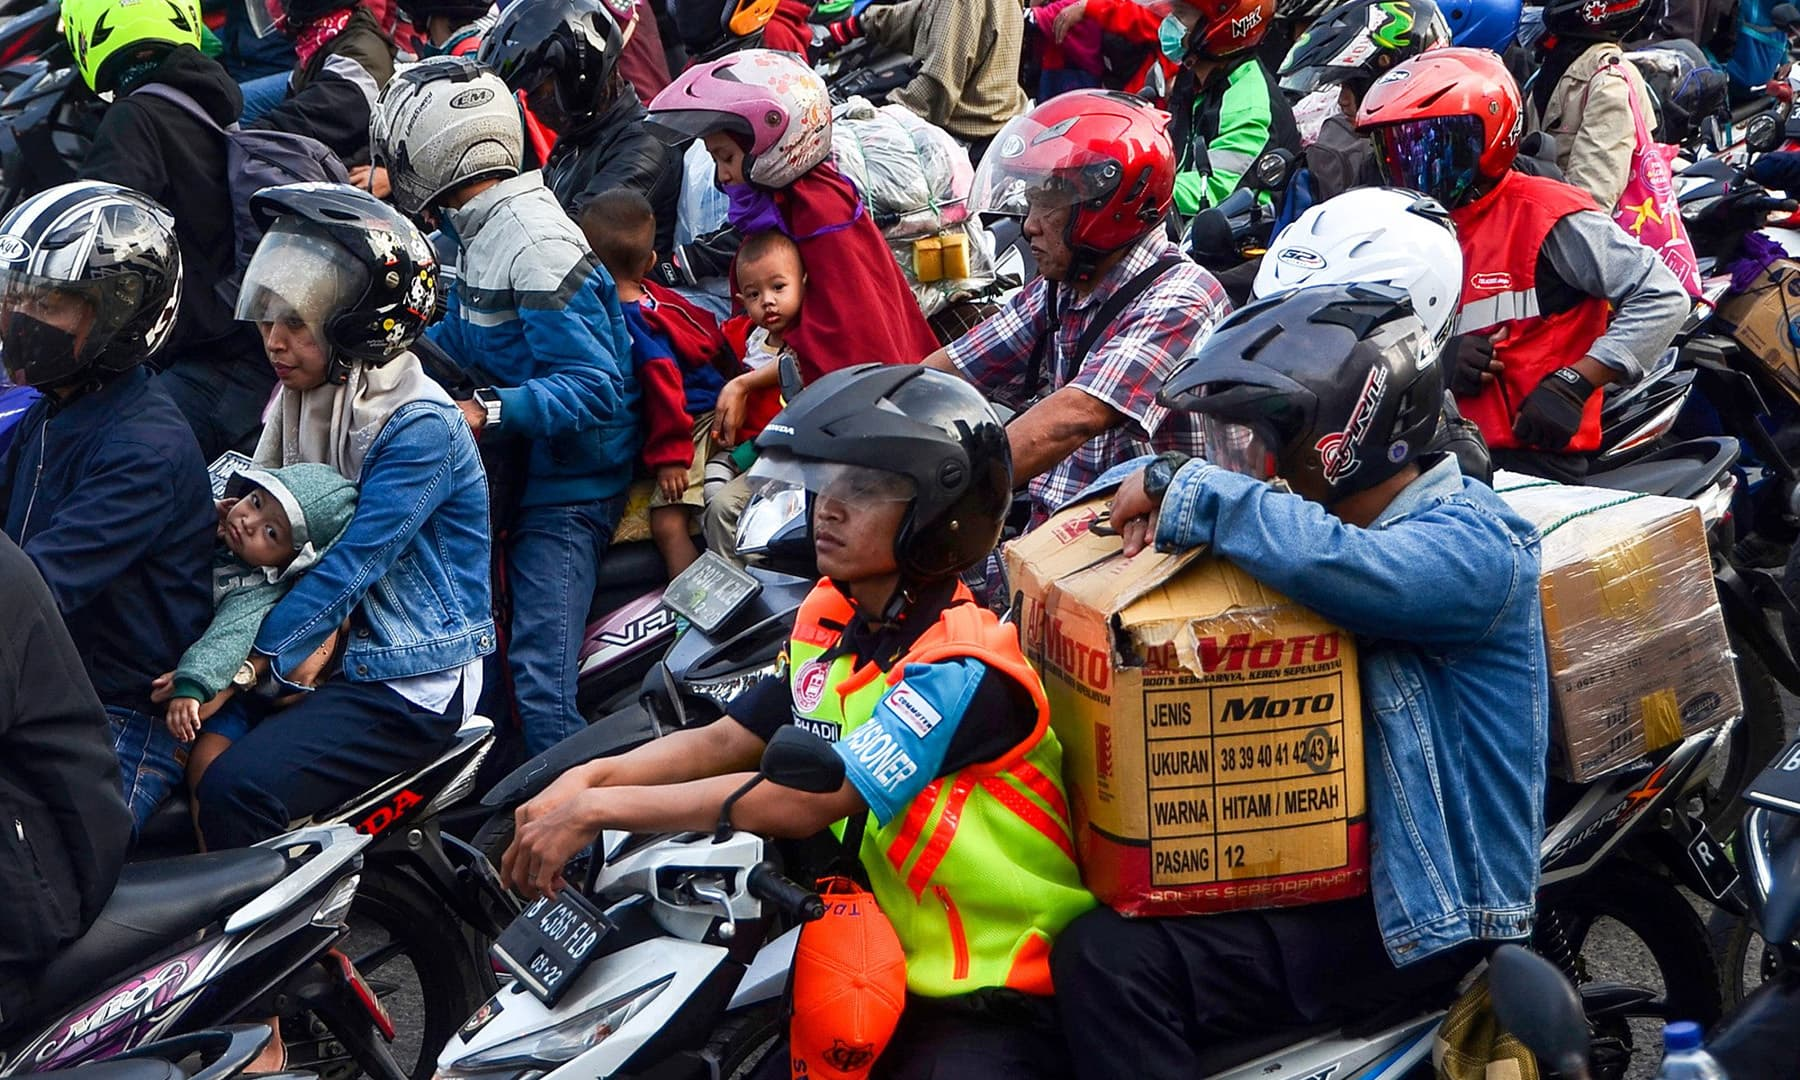 Indonesians ride their motorcycles in Bekasi on the outskirts of Jakarta on Friday during Indonesia's mass moving of Muslims to their respective hometowns ahead of Eidul Fitr. — AFP